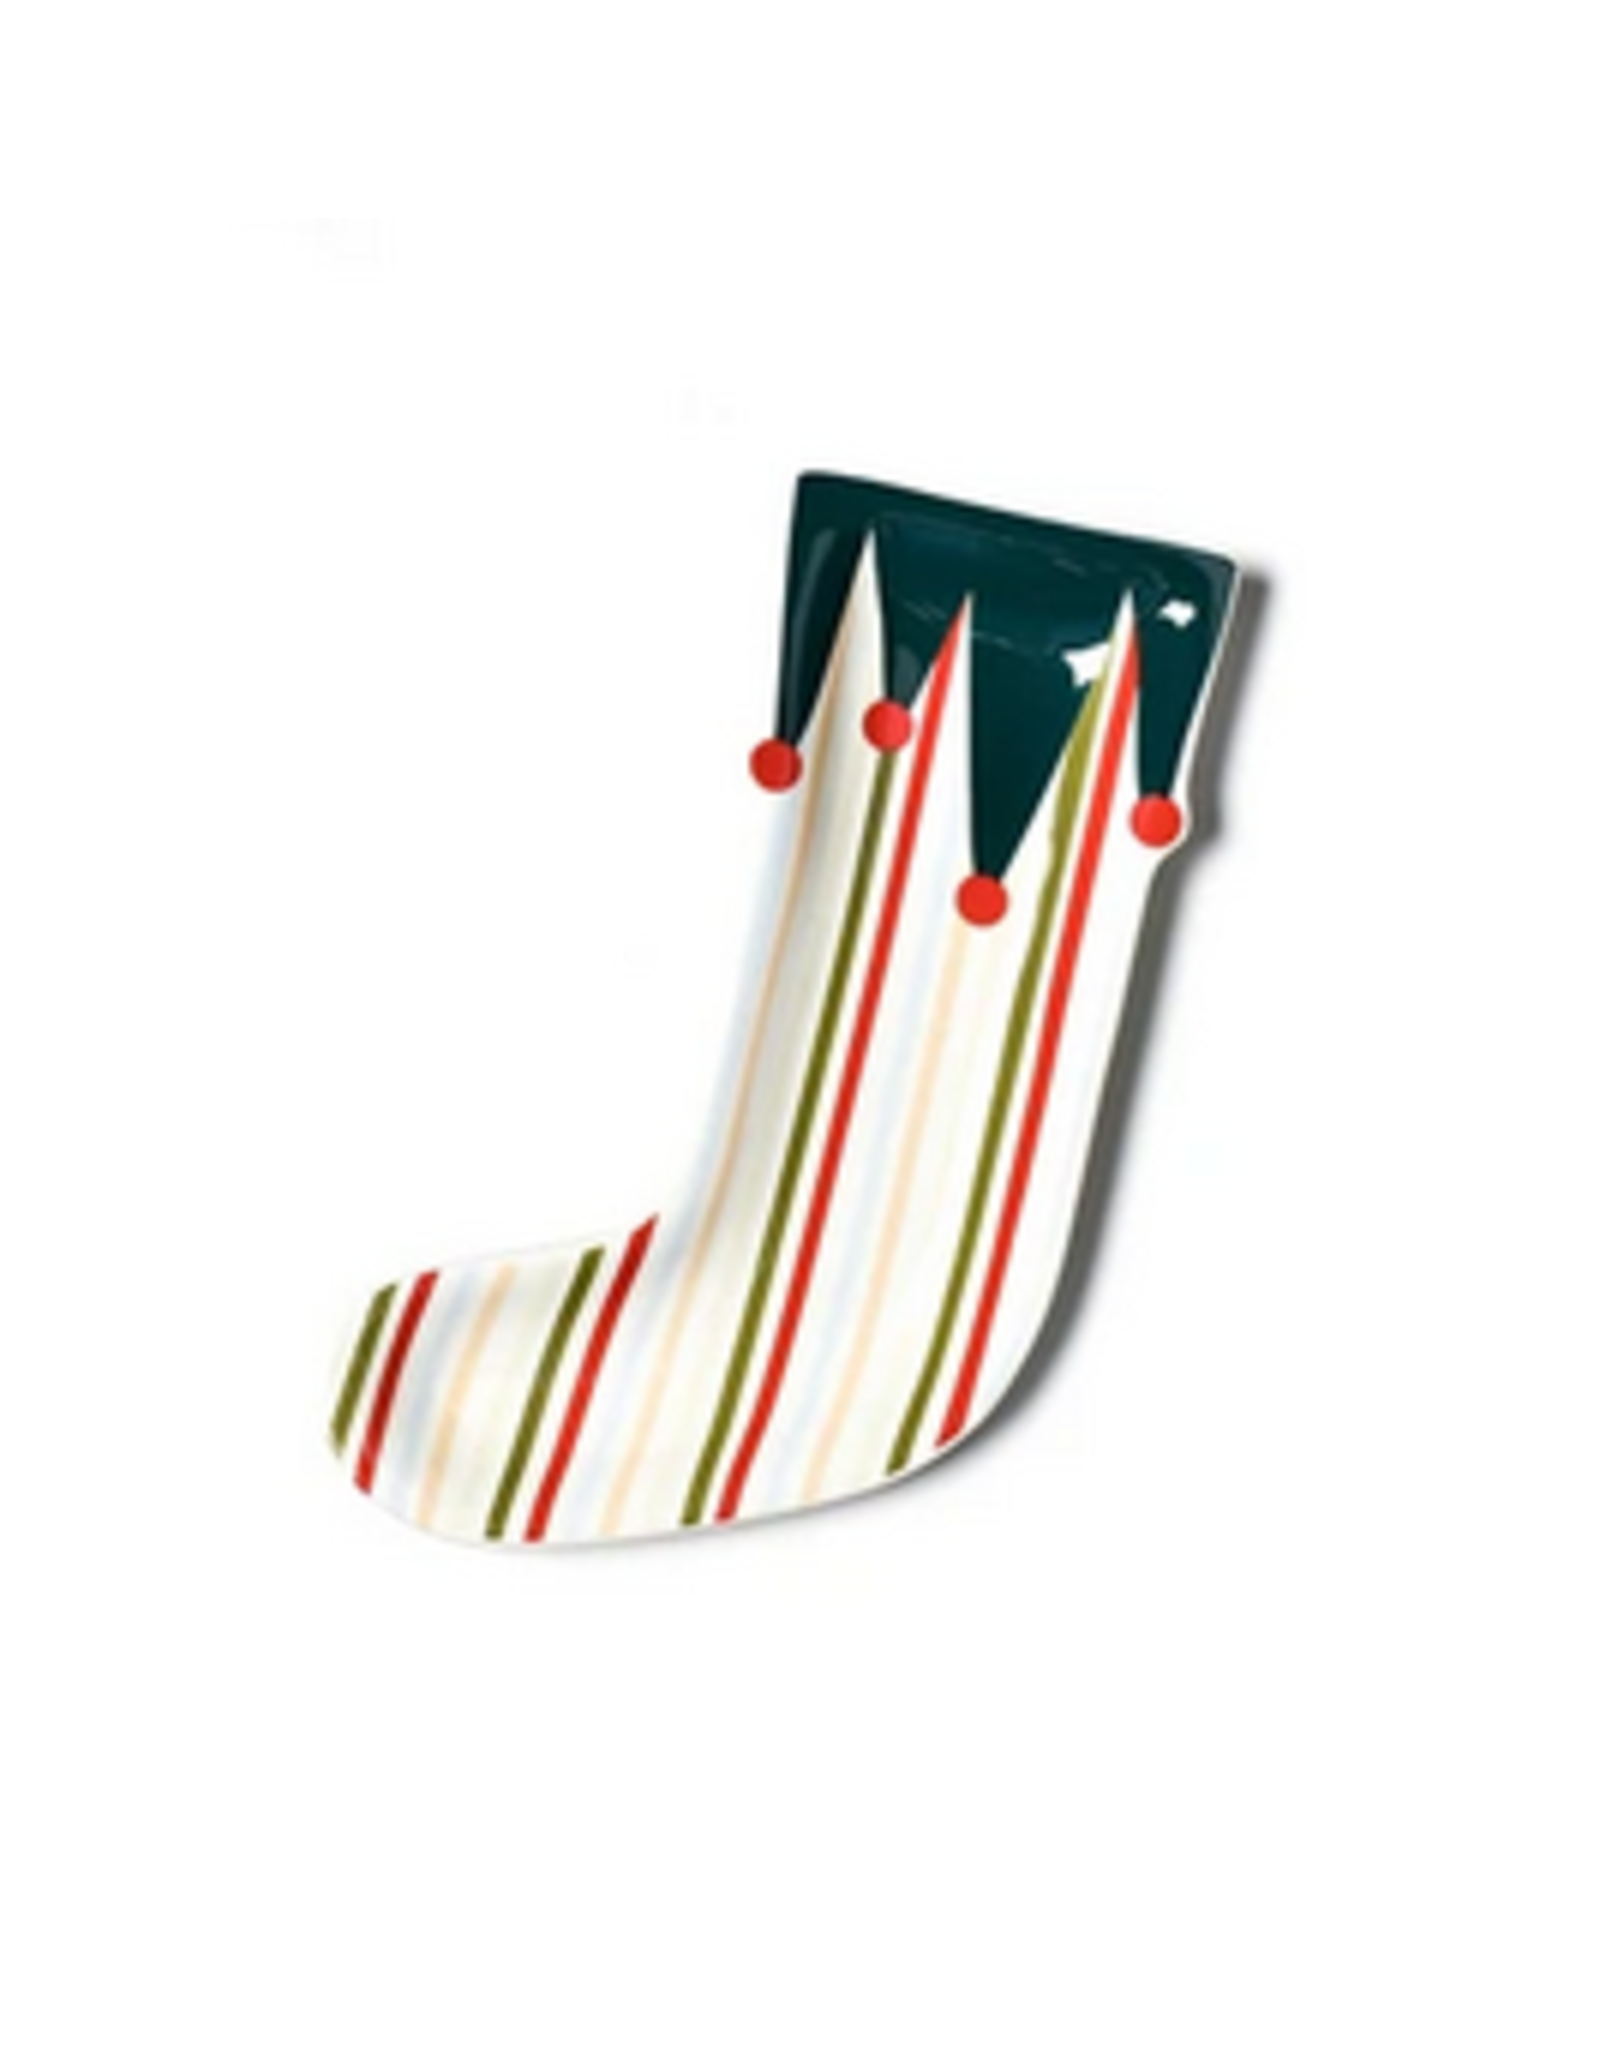 Coton Colors Stocking Shaped Platter